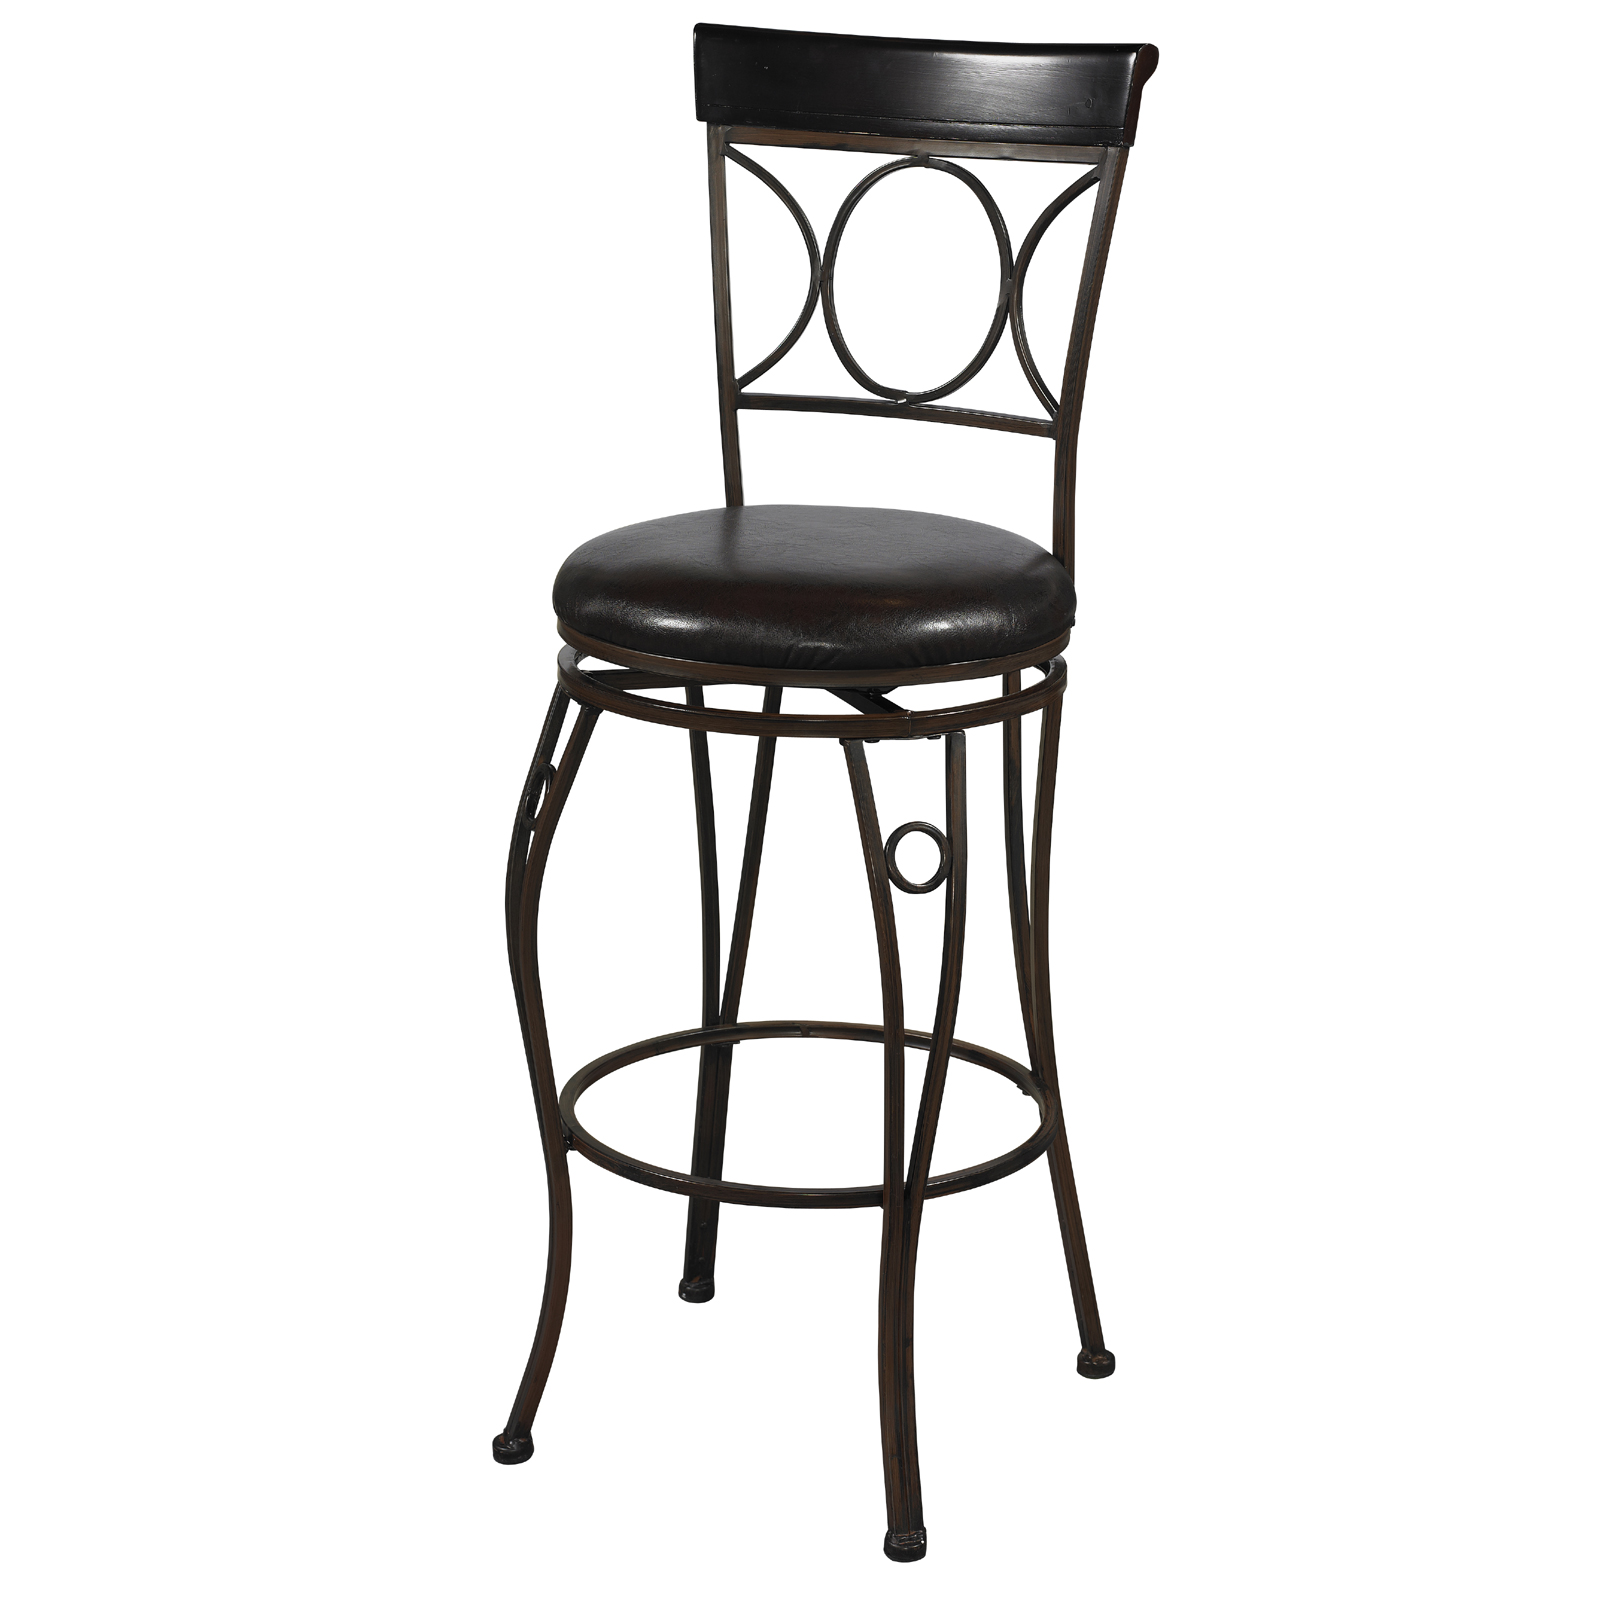 ... Bar Stool · Circles Back Kitchen Stool by Linon Home Decor ...  sc 1 st  Organize-It & Metal Bar Stools and Bar Chairs | Organize-It islam-shia.org